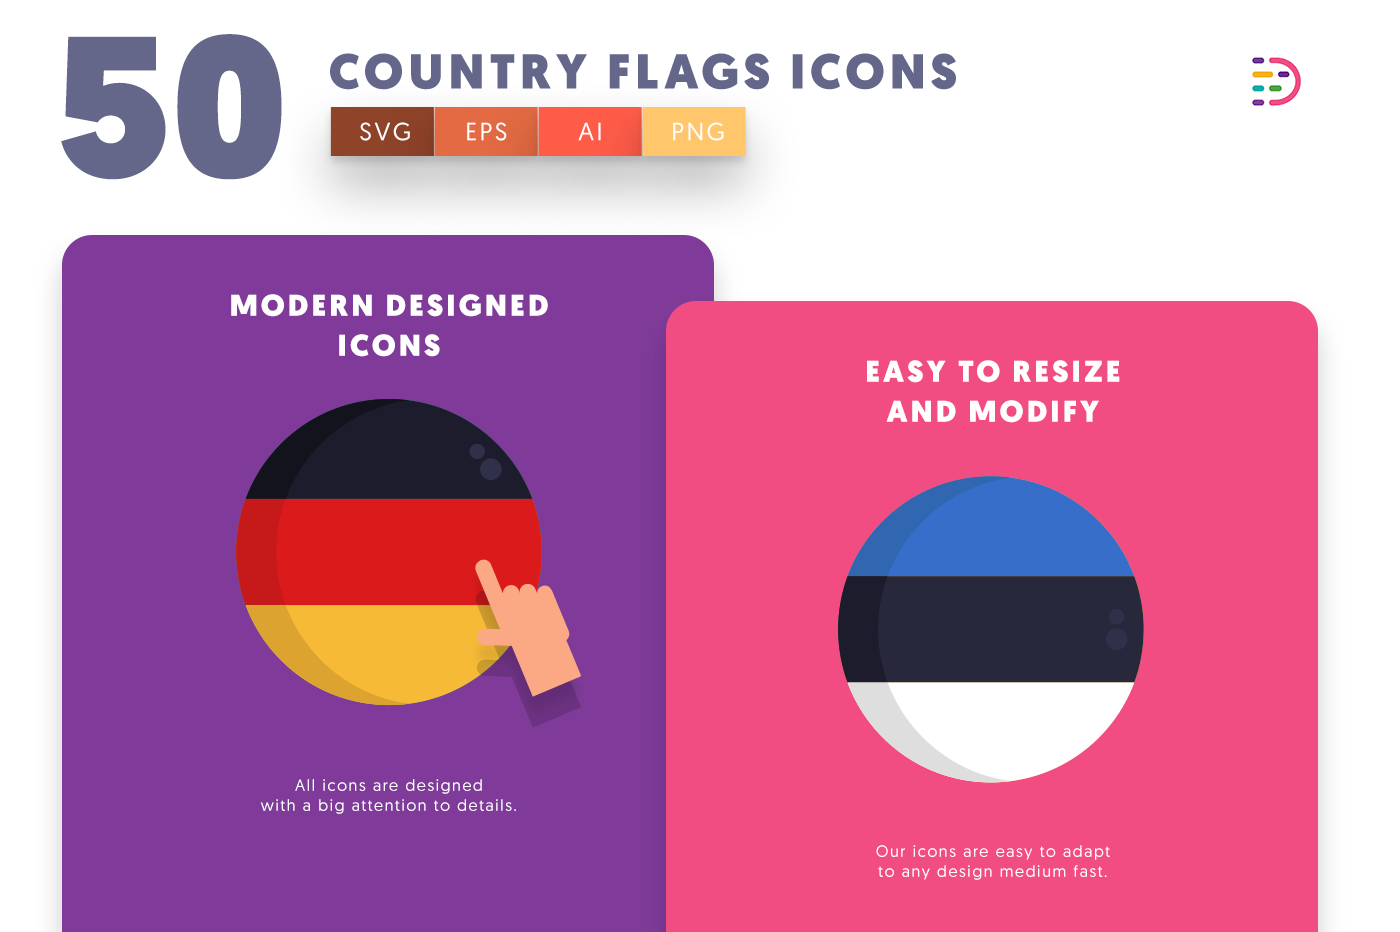 Country Flags icons png/svg/eps